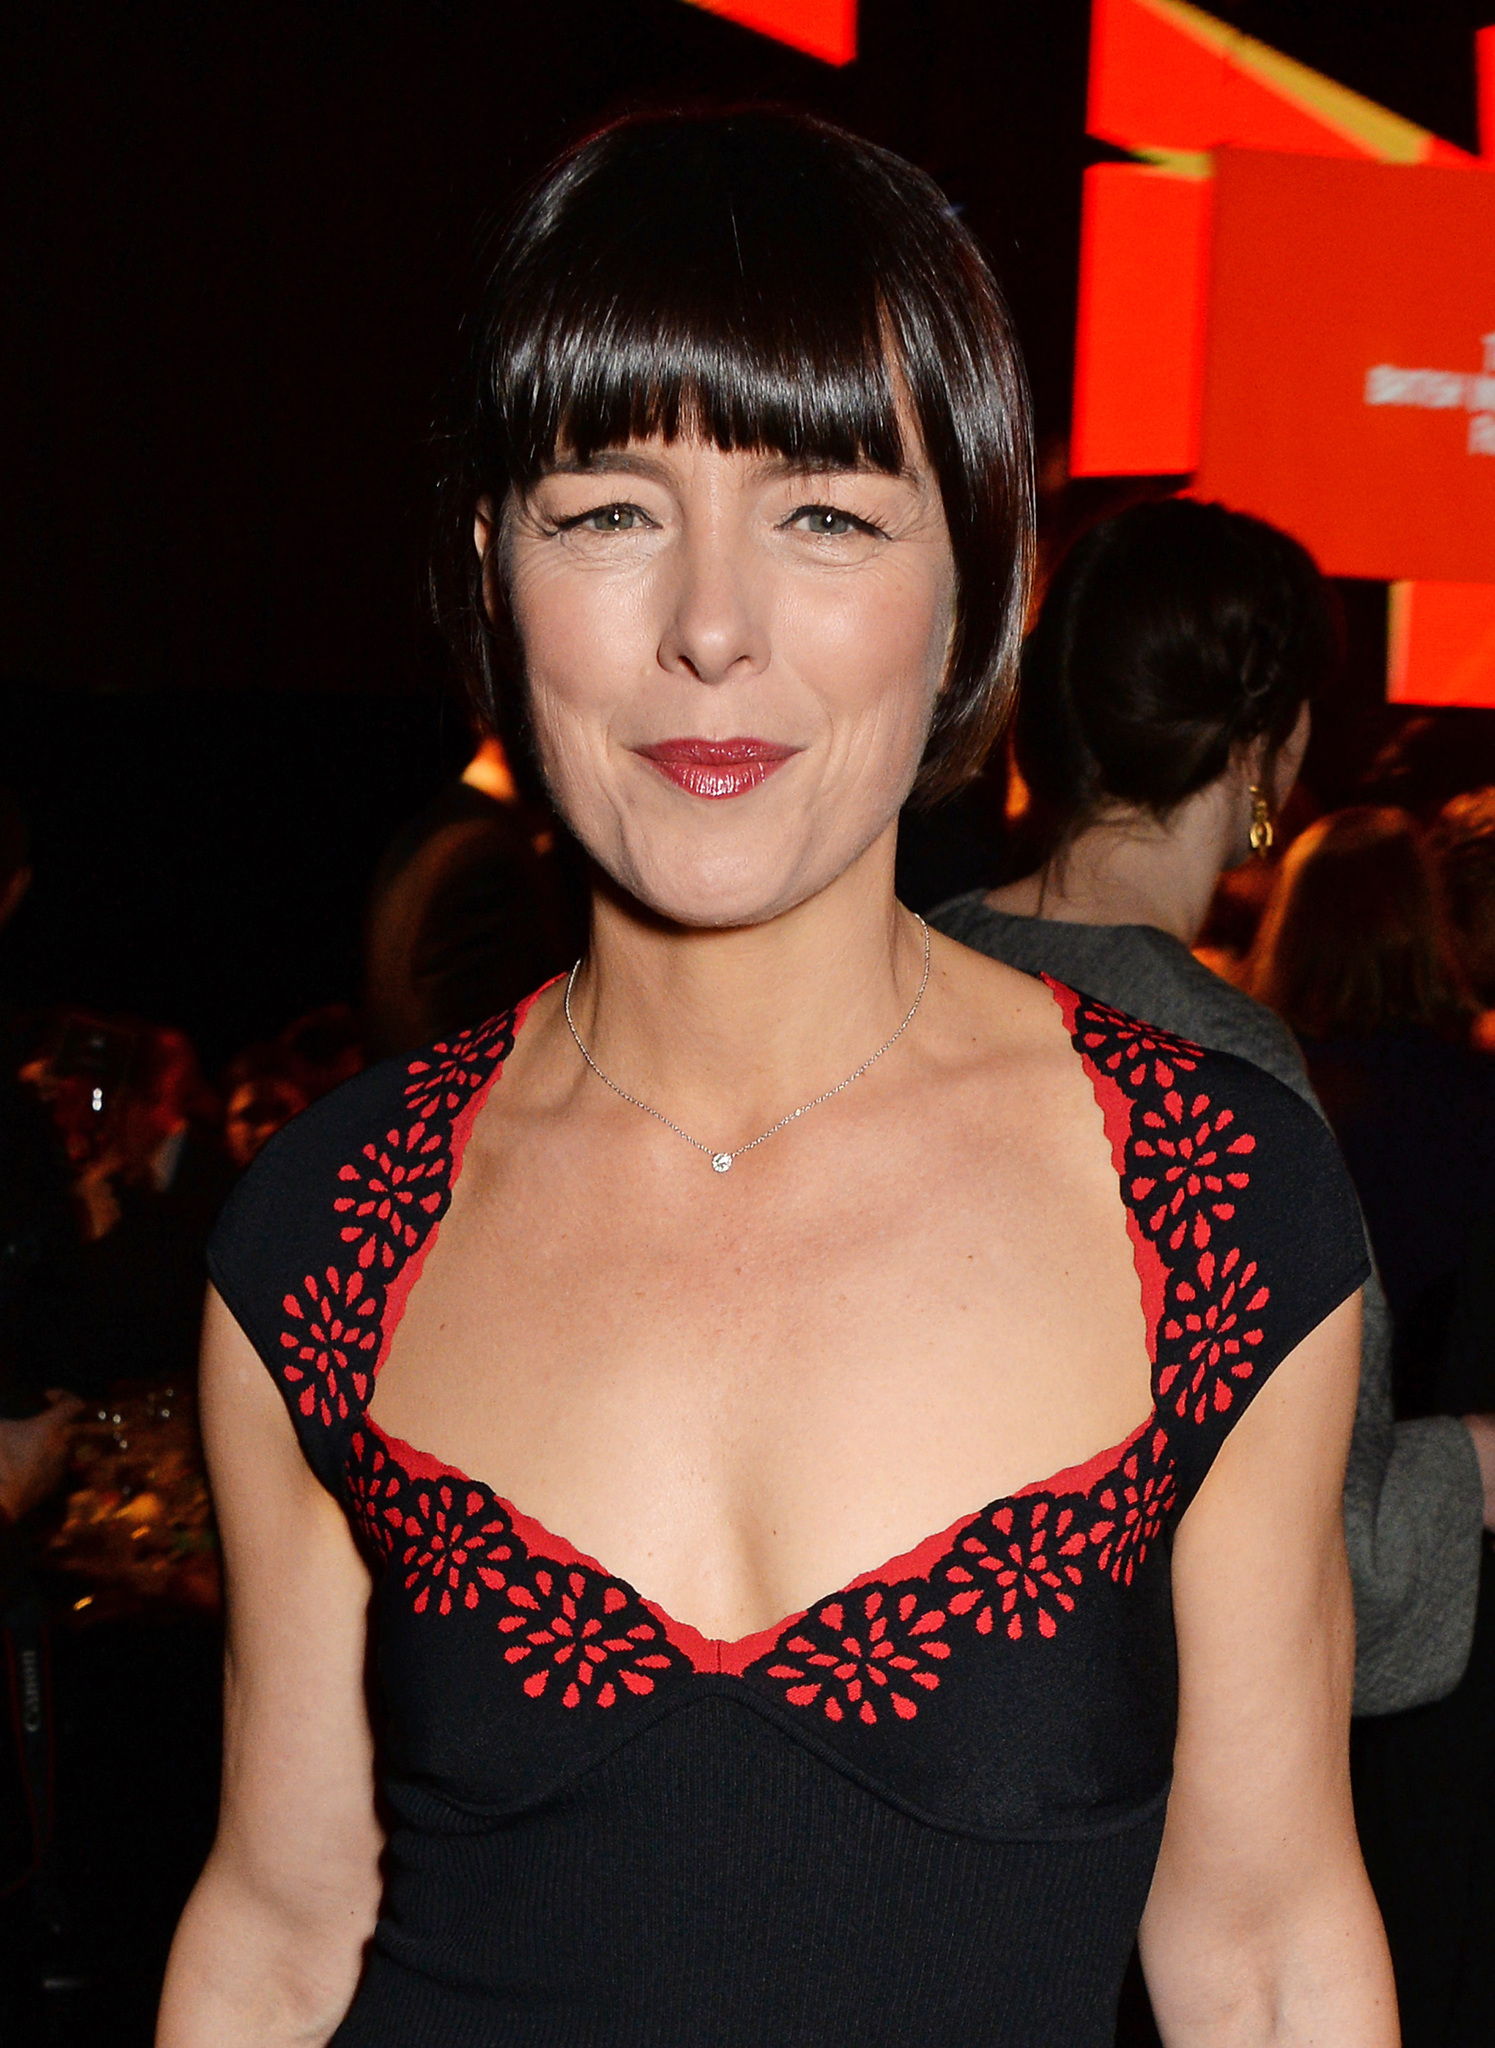 Pictures Olivia Williams nudes (54 images), Hot